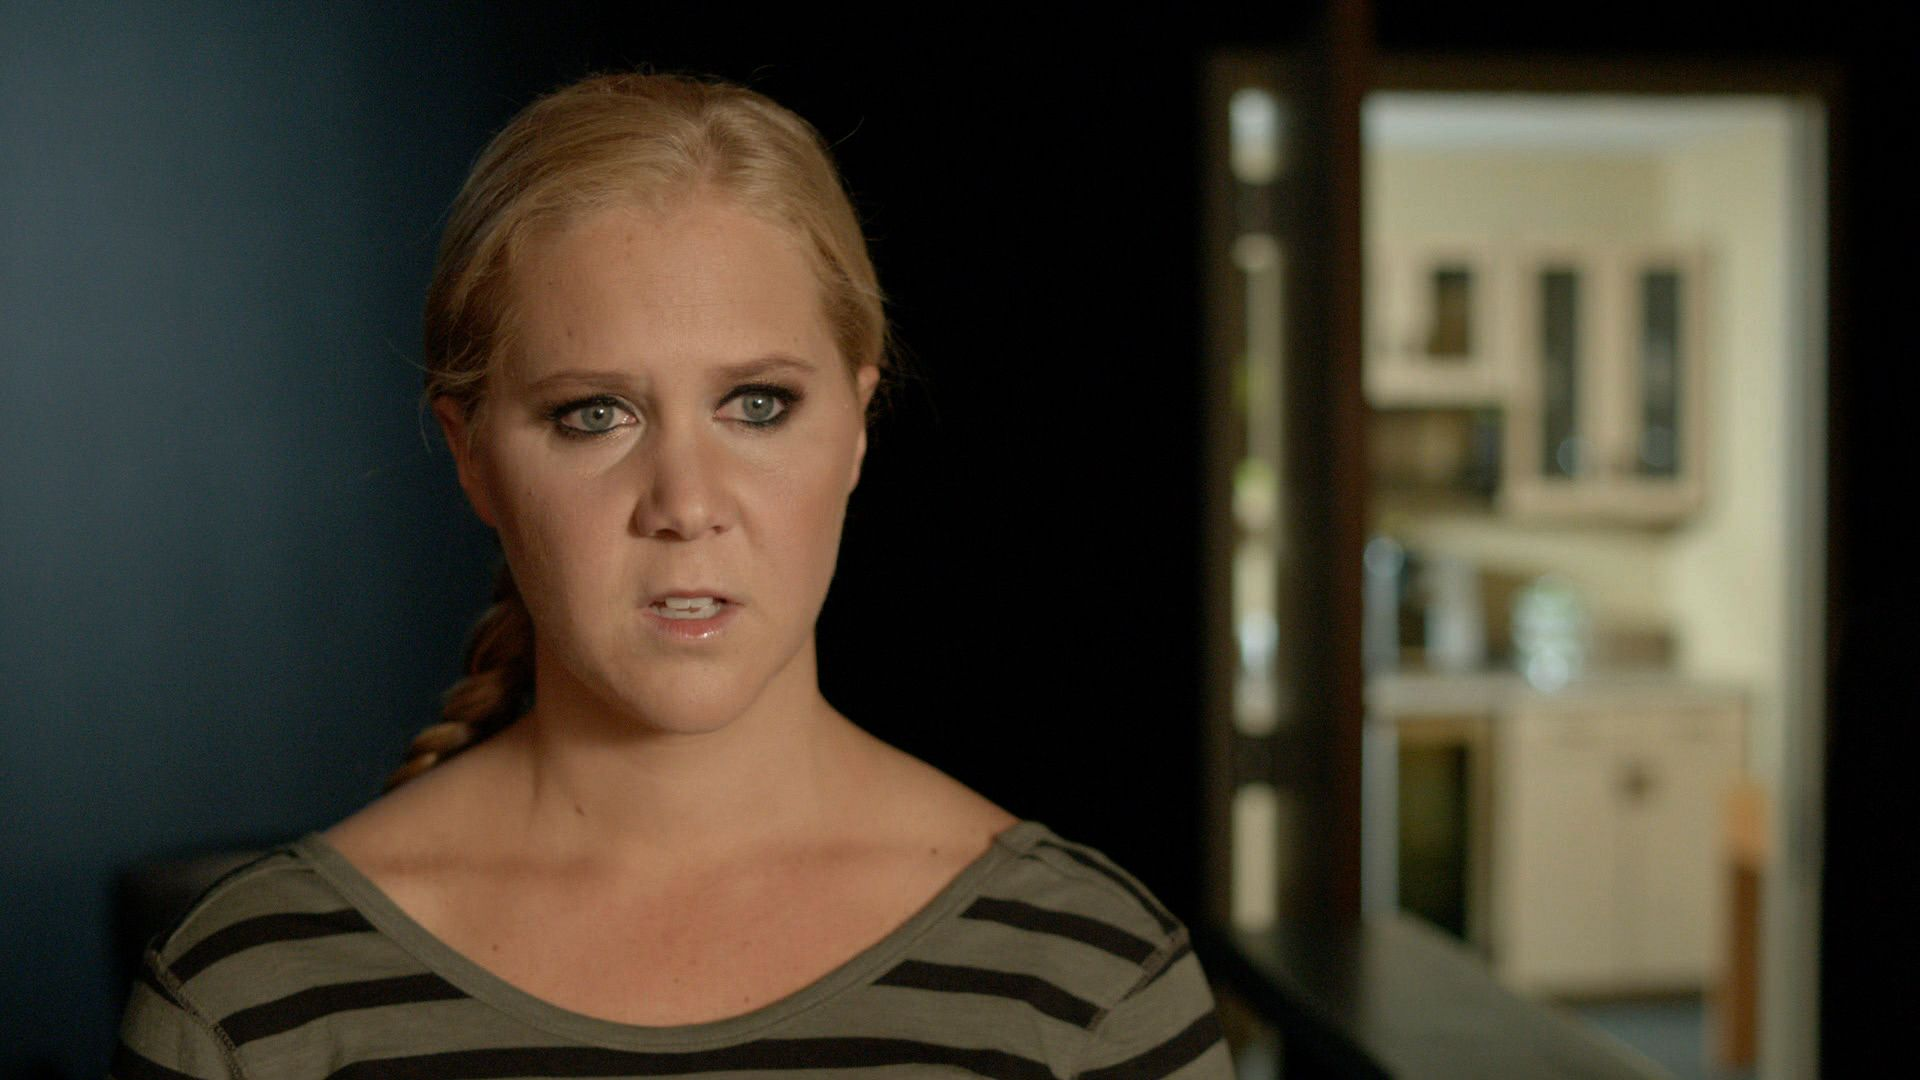 Amy Schumer Sex Video focus group - inside amy schumer (video clip) | comedy central